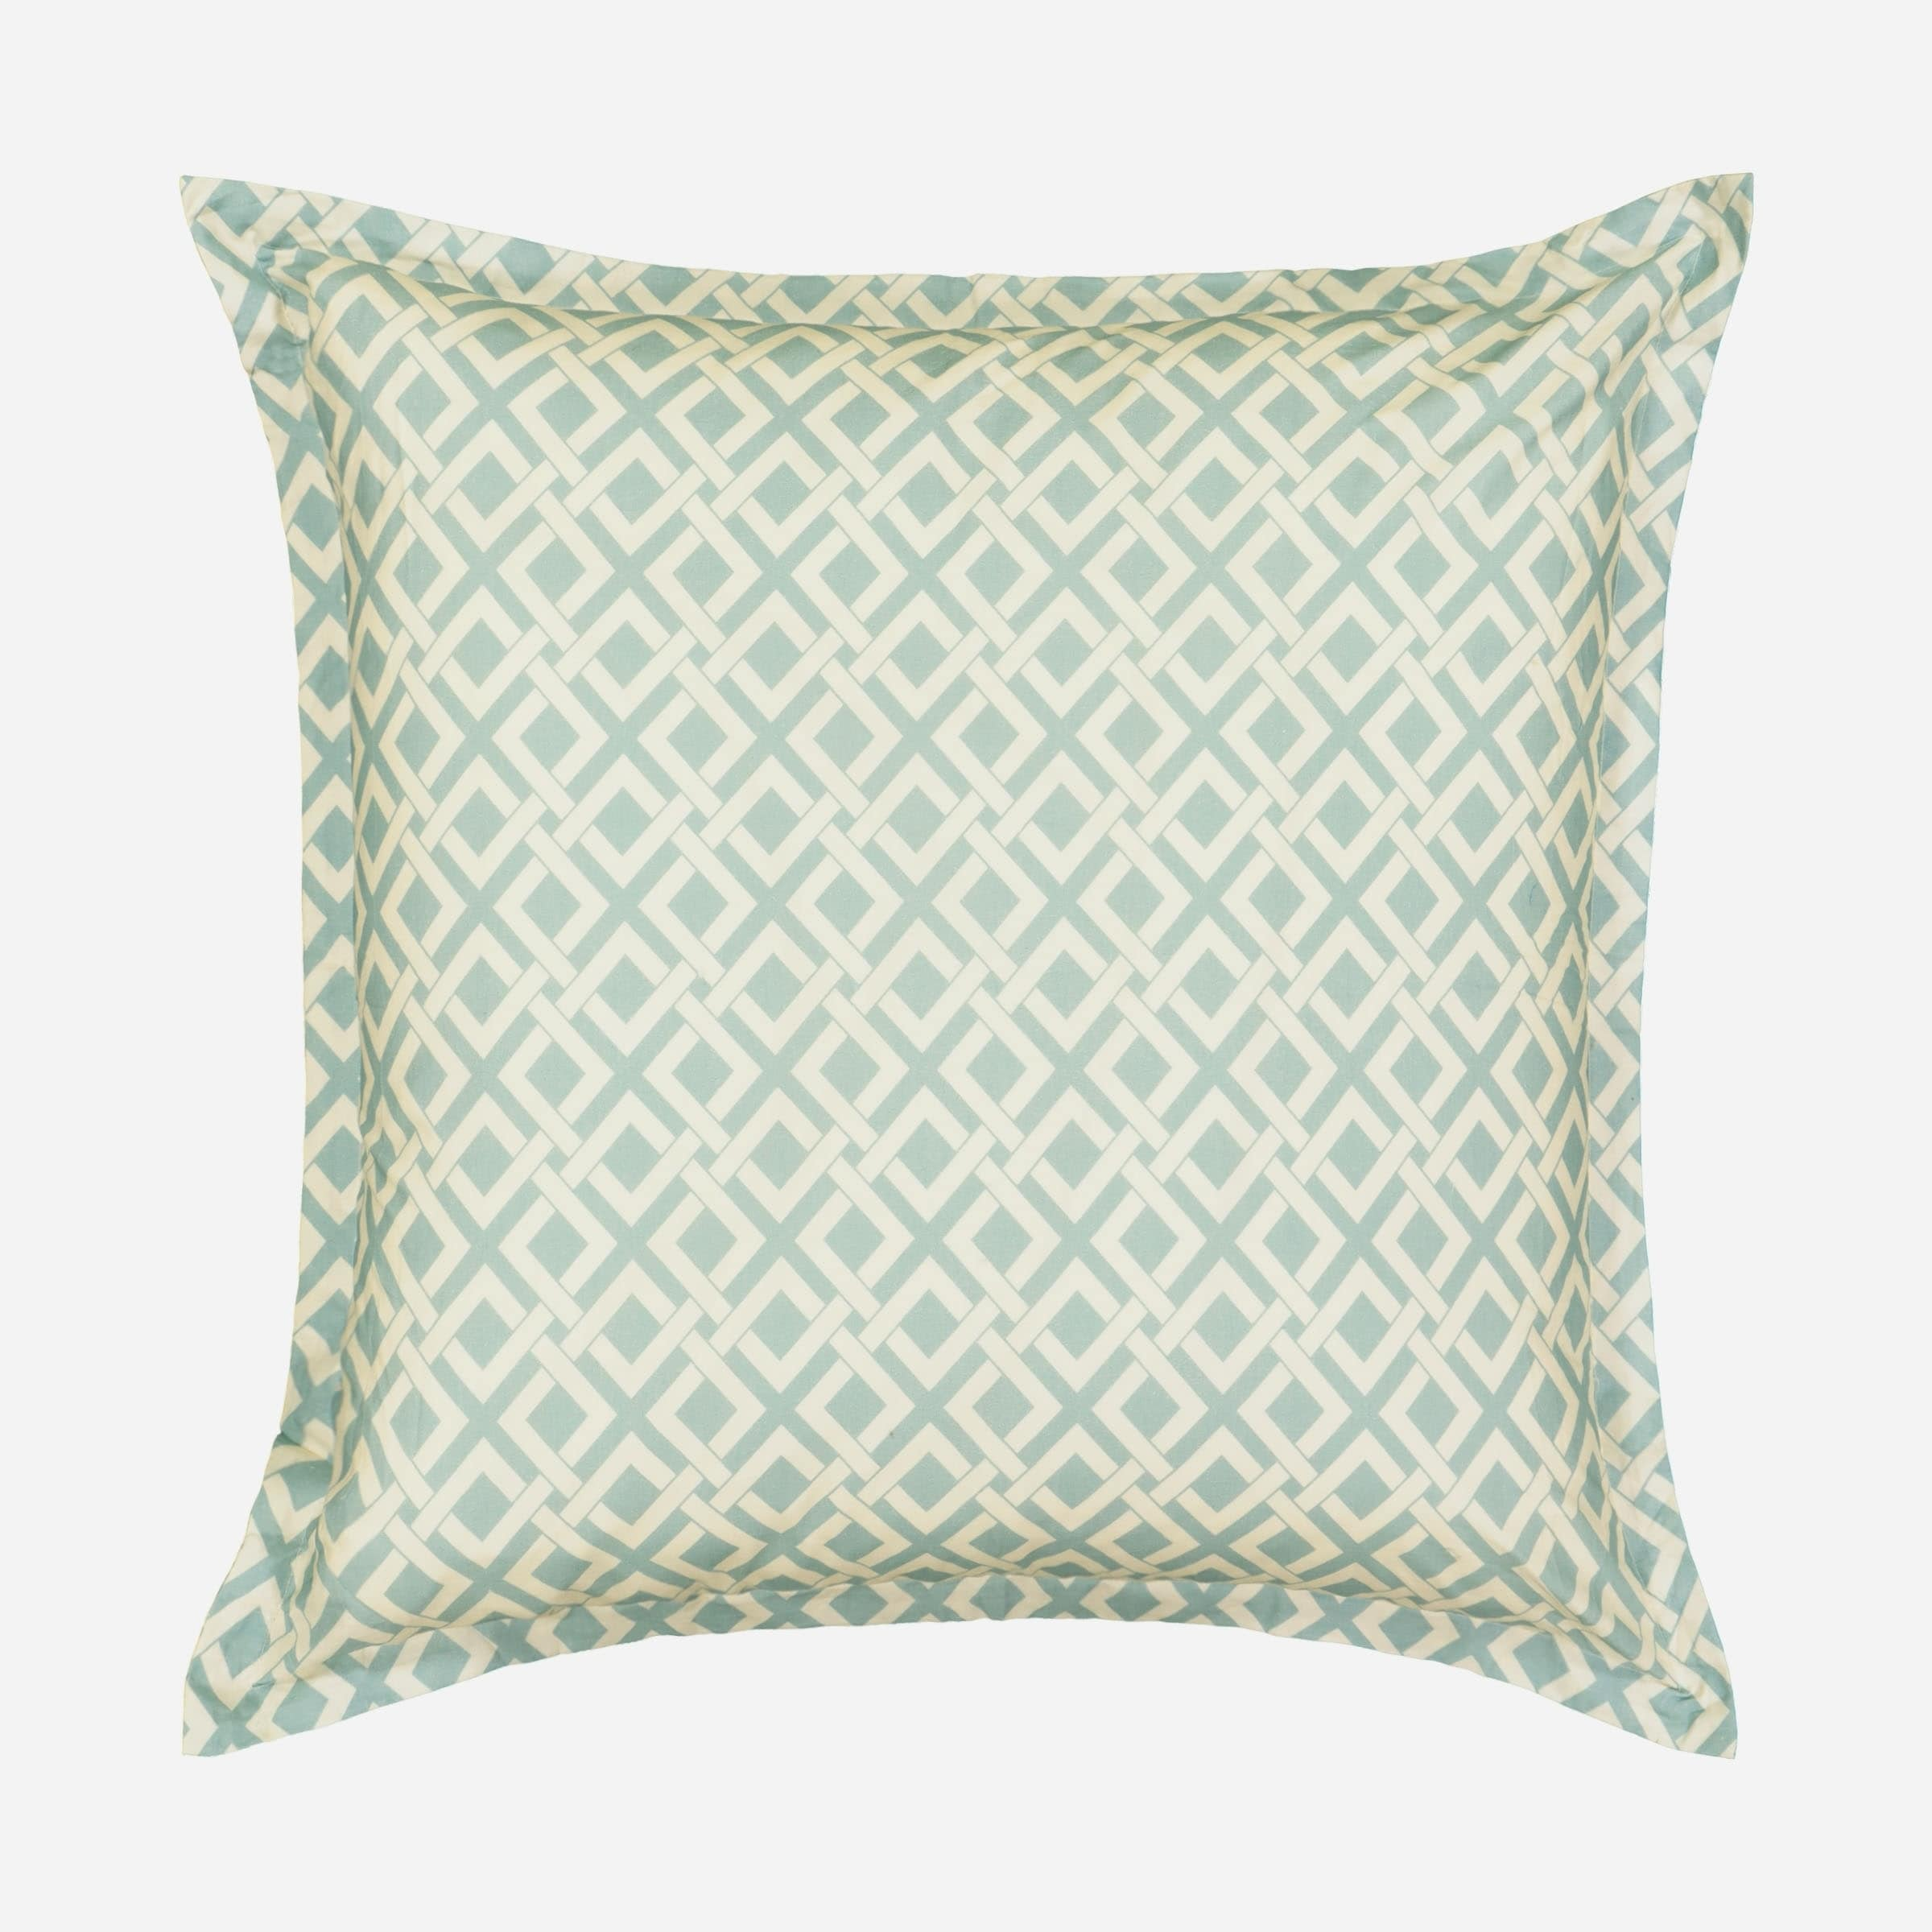 Historic Charleston Throw Pillow Covers Blue 26 X 26 King Charles Decorative Pillow Cases Euro Sham For Sofa Couch Bedroom Living Room Pillow Shams